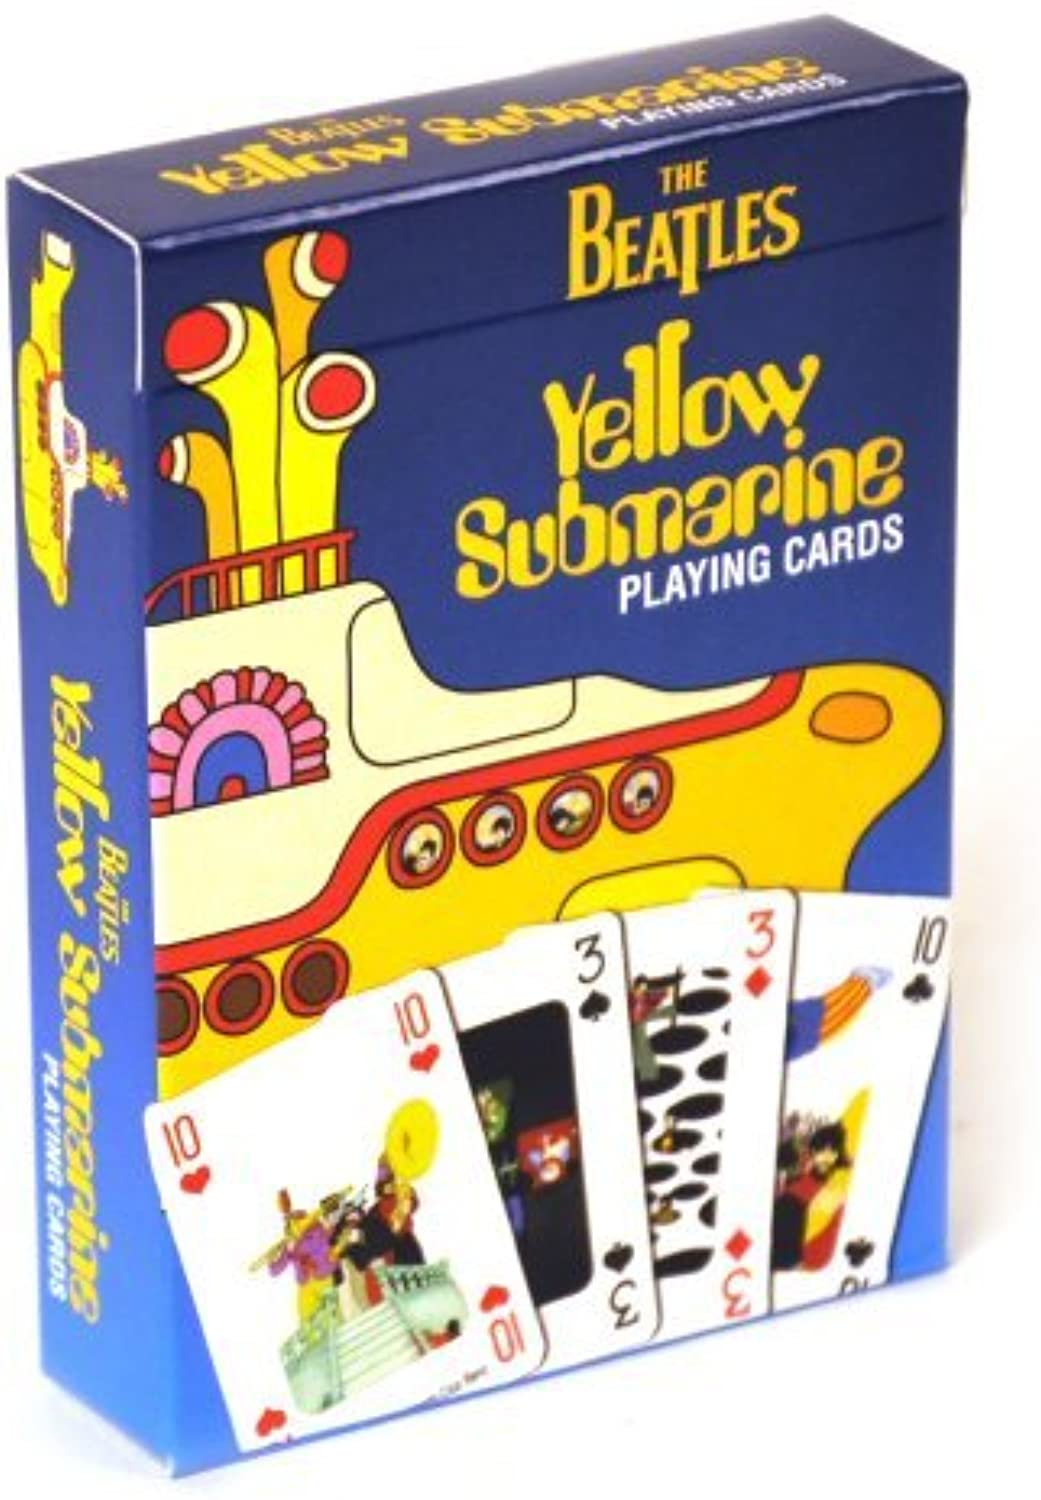 The Beatles Yellow Submarine Playing Cards by Subafilms